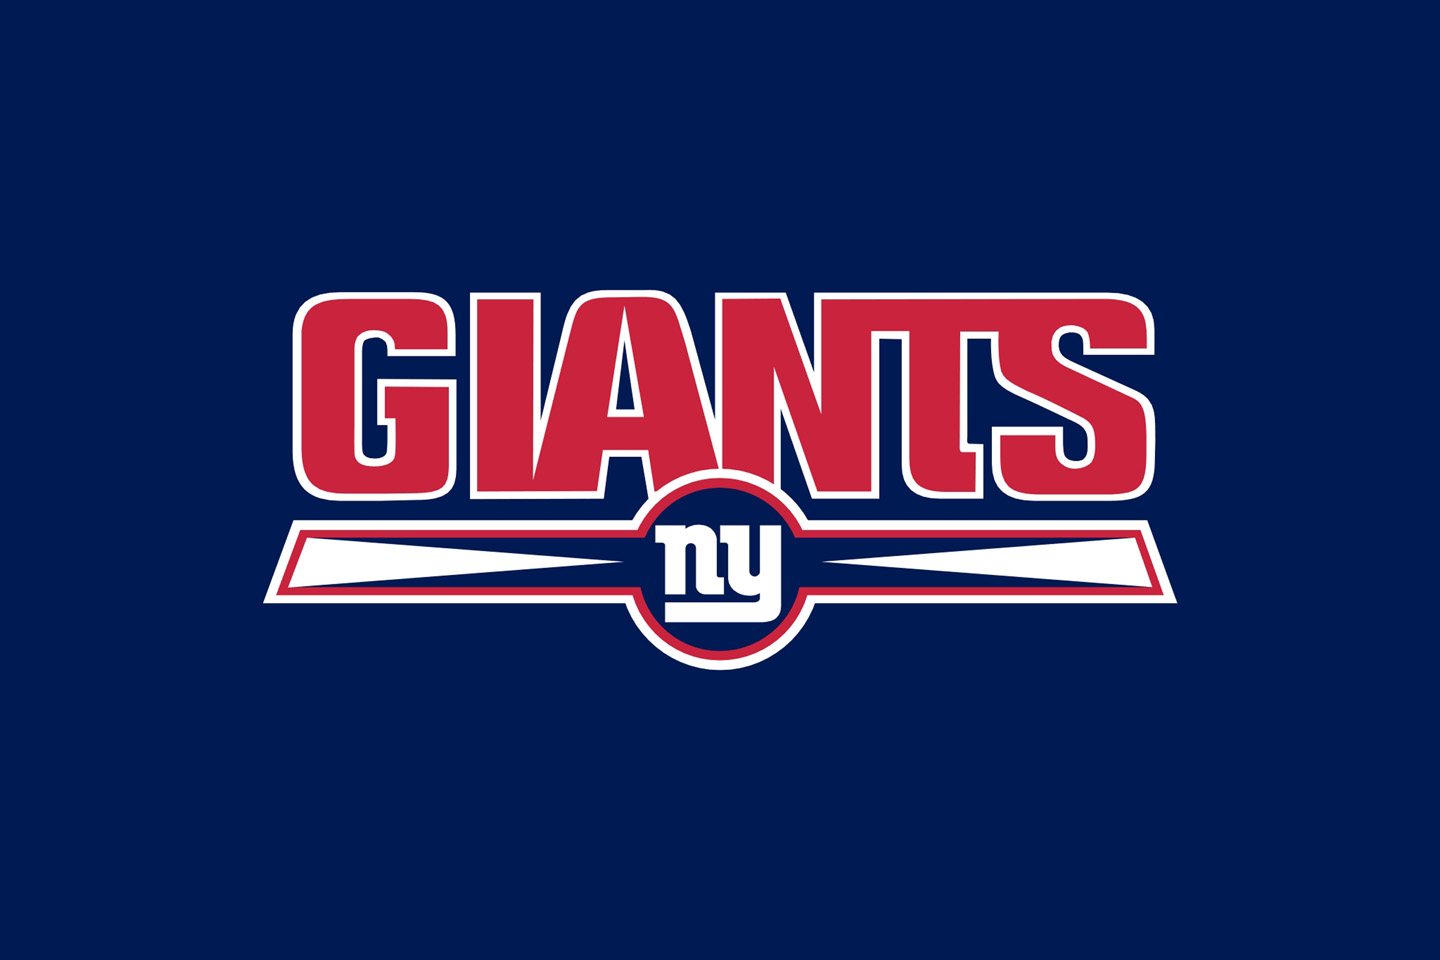 Go giants!